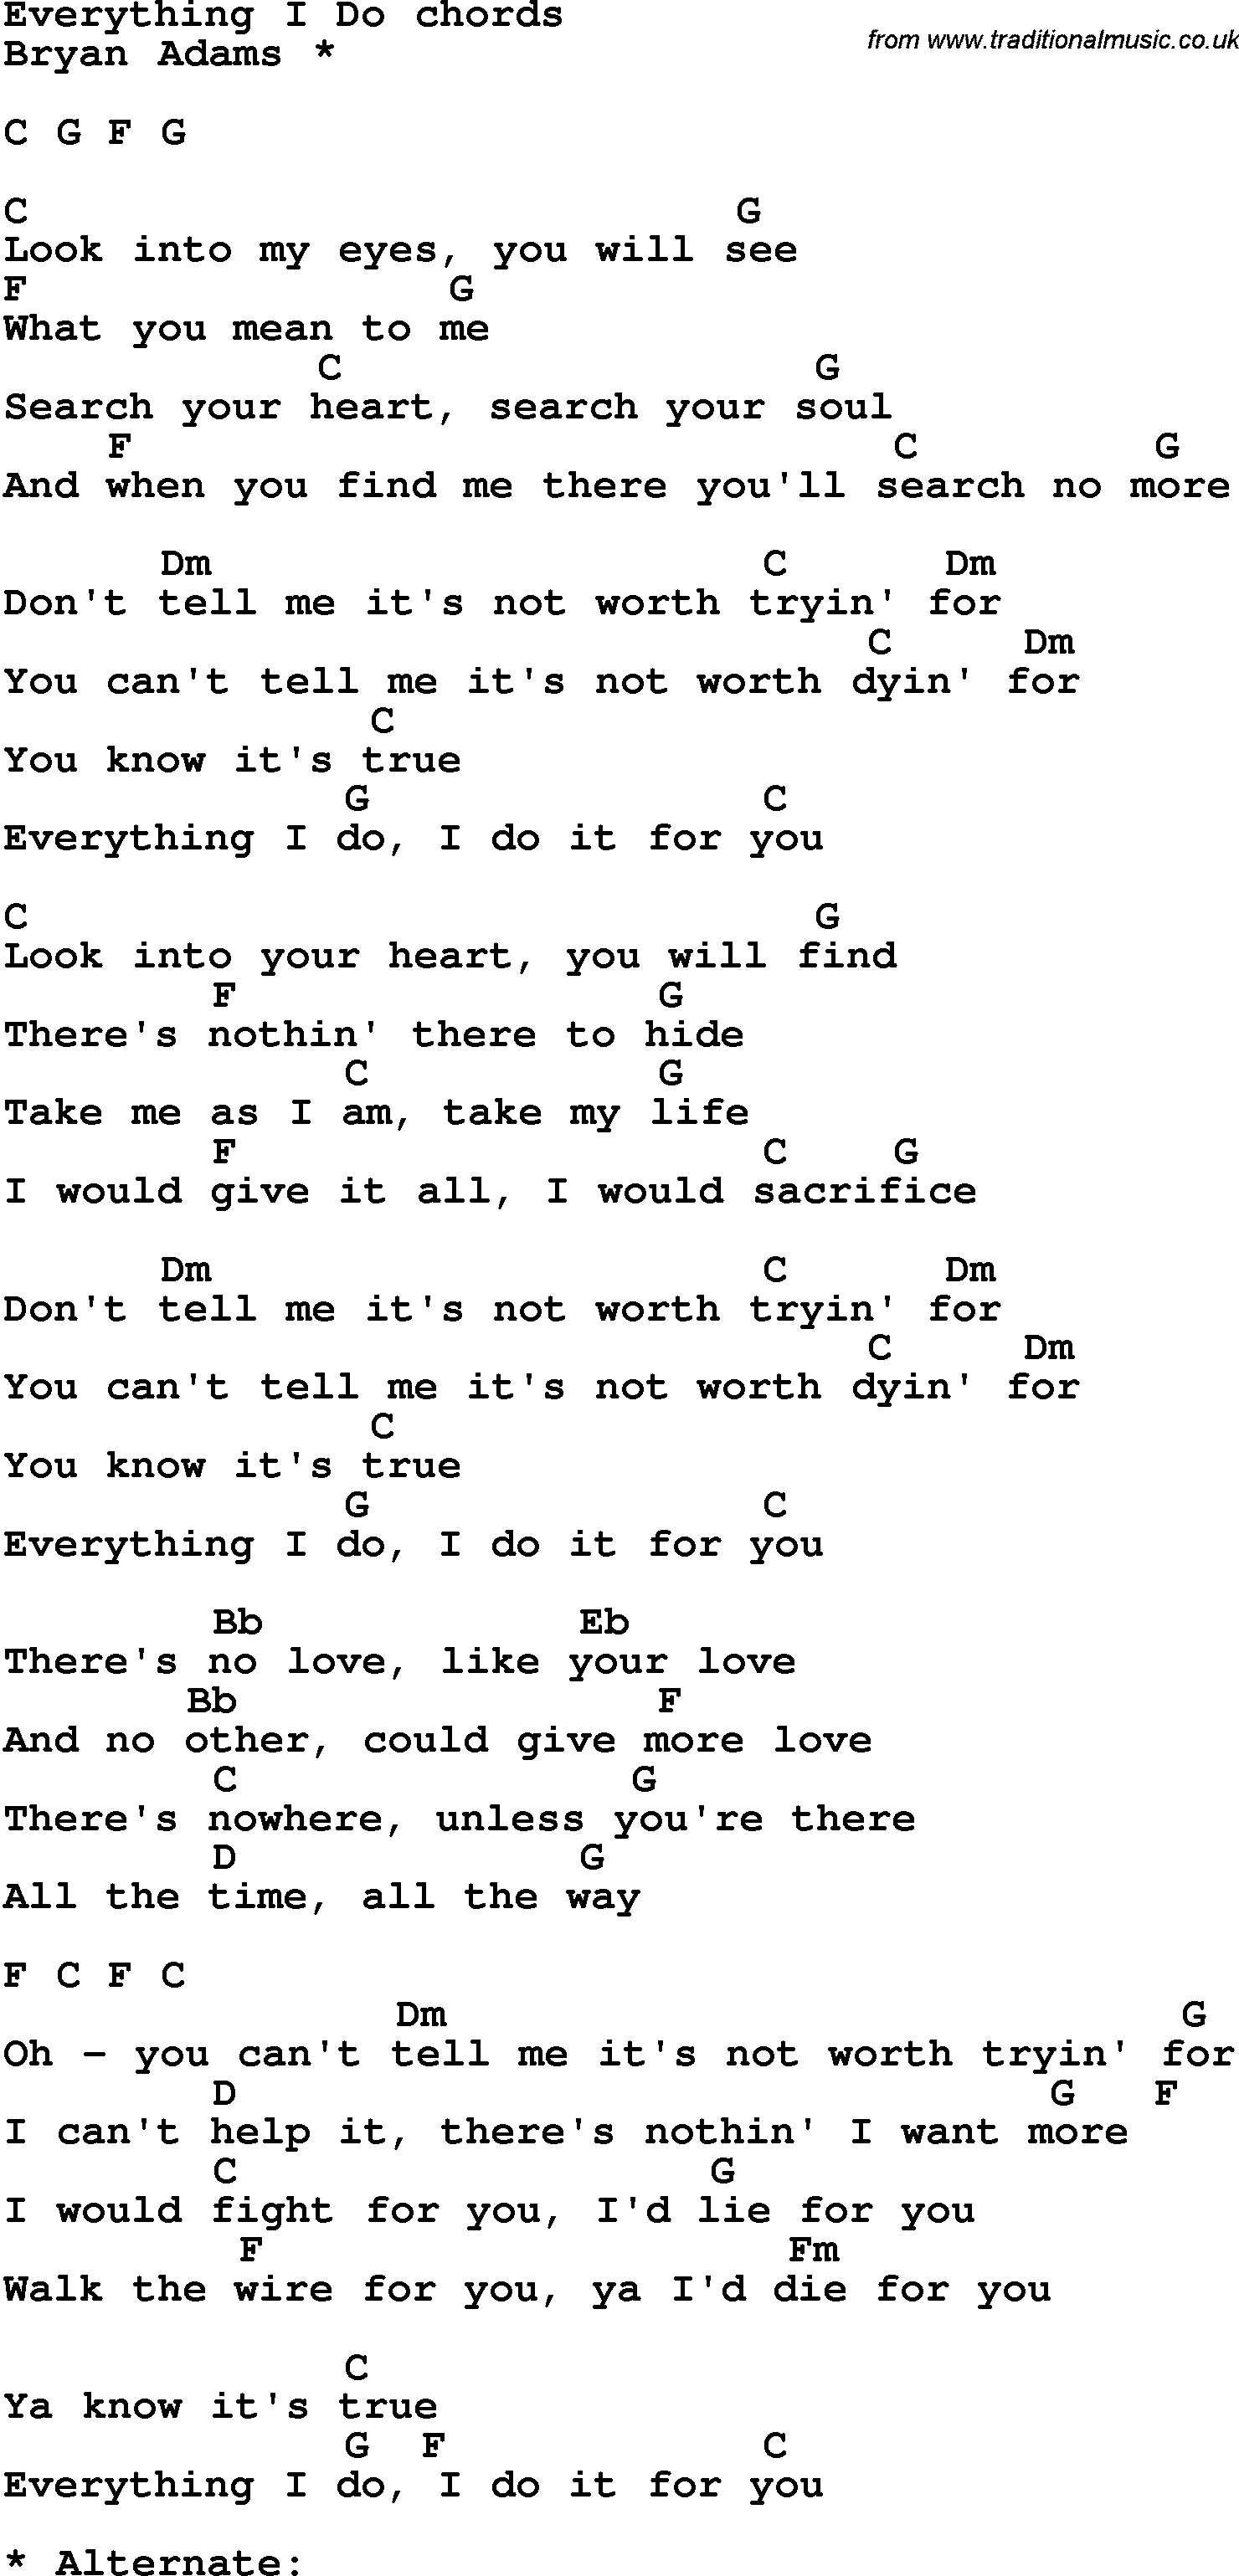 Song Lyrics With Guitar Chords For Everything I Do Guitar Chords Guitar Songs Guitar Sheet Music